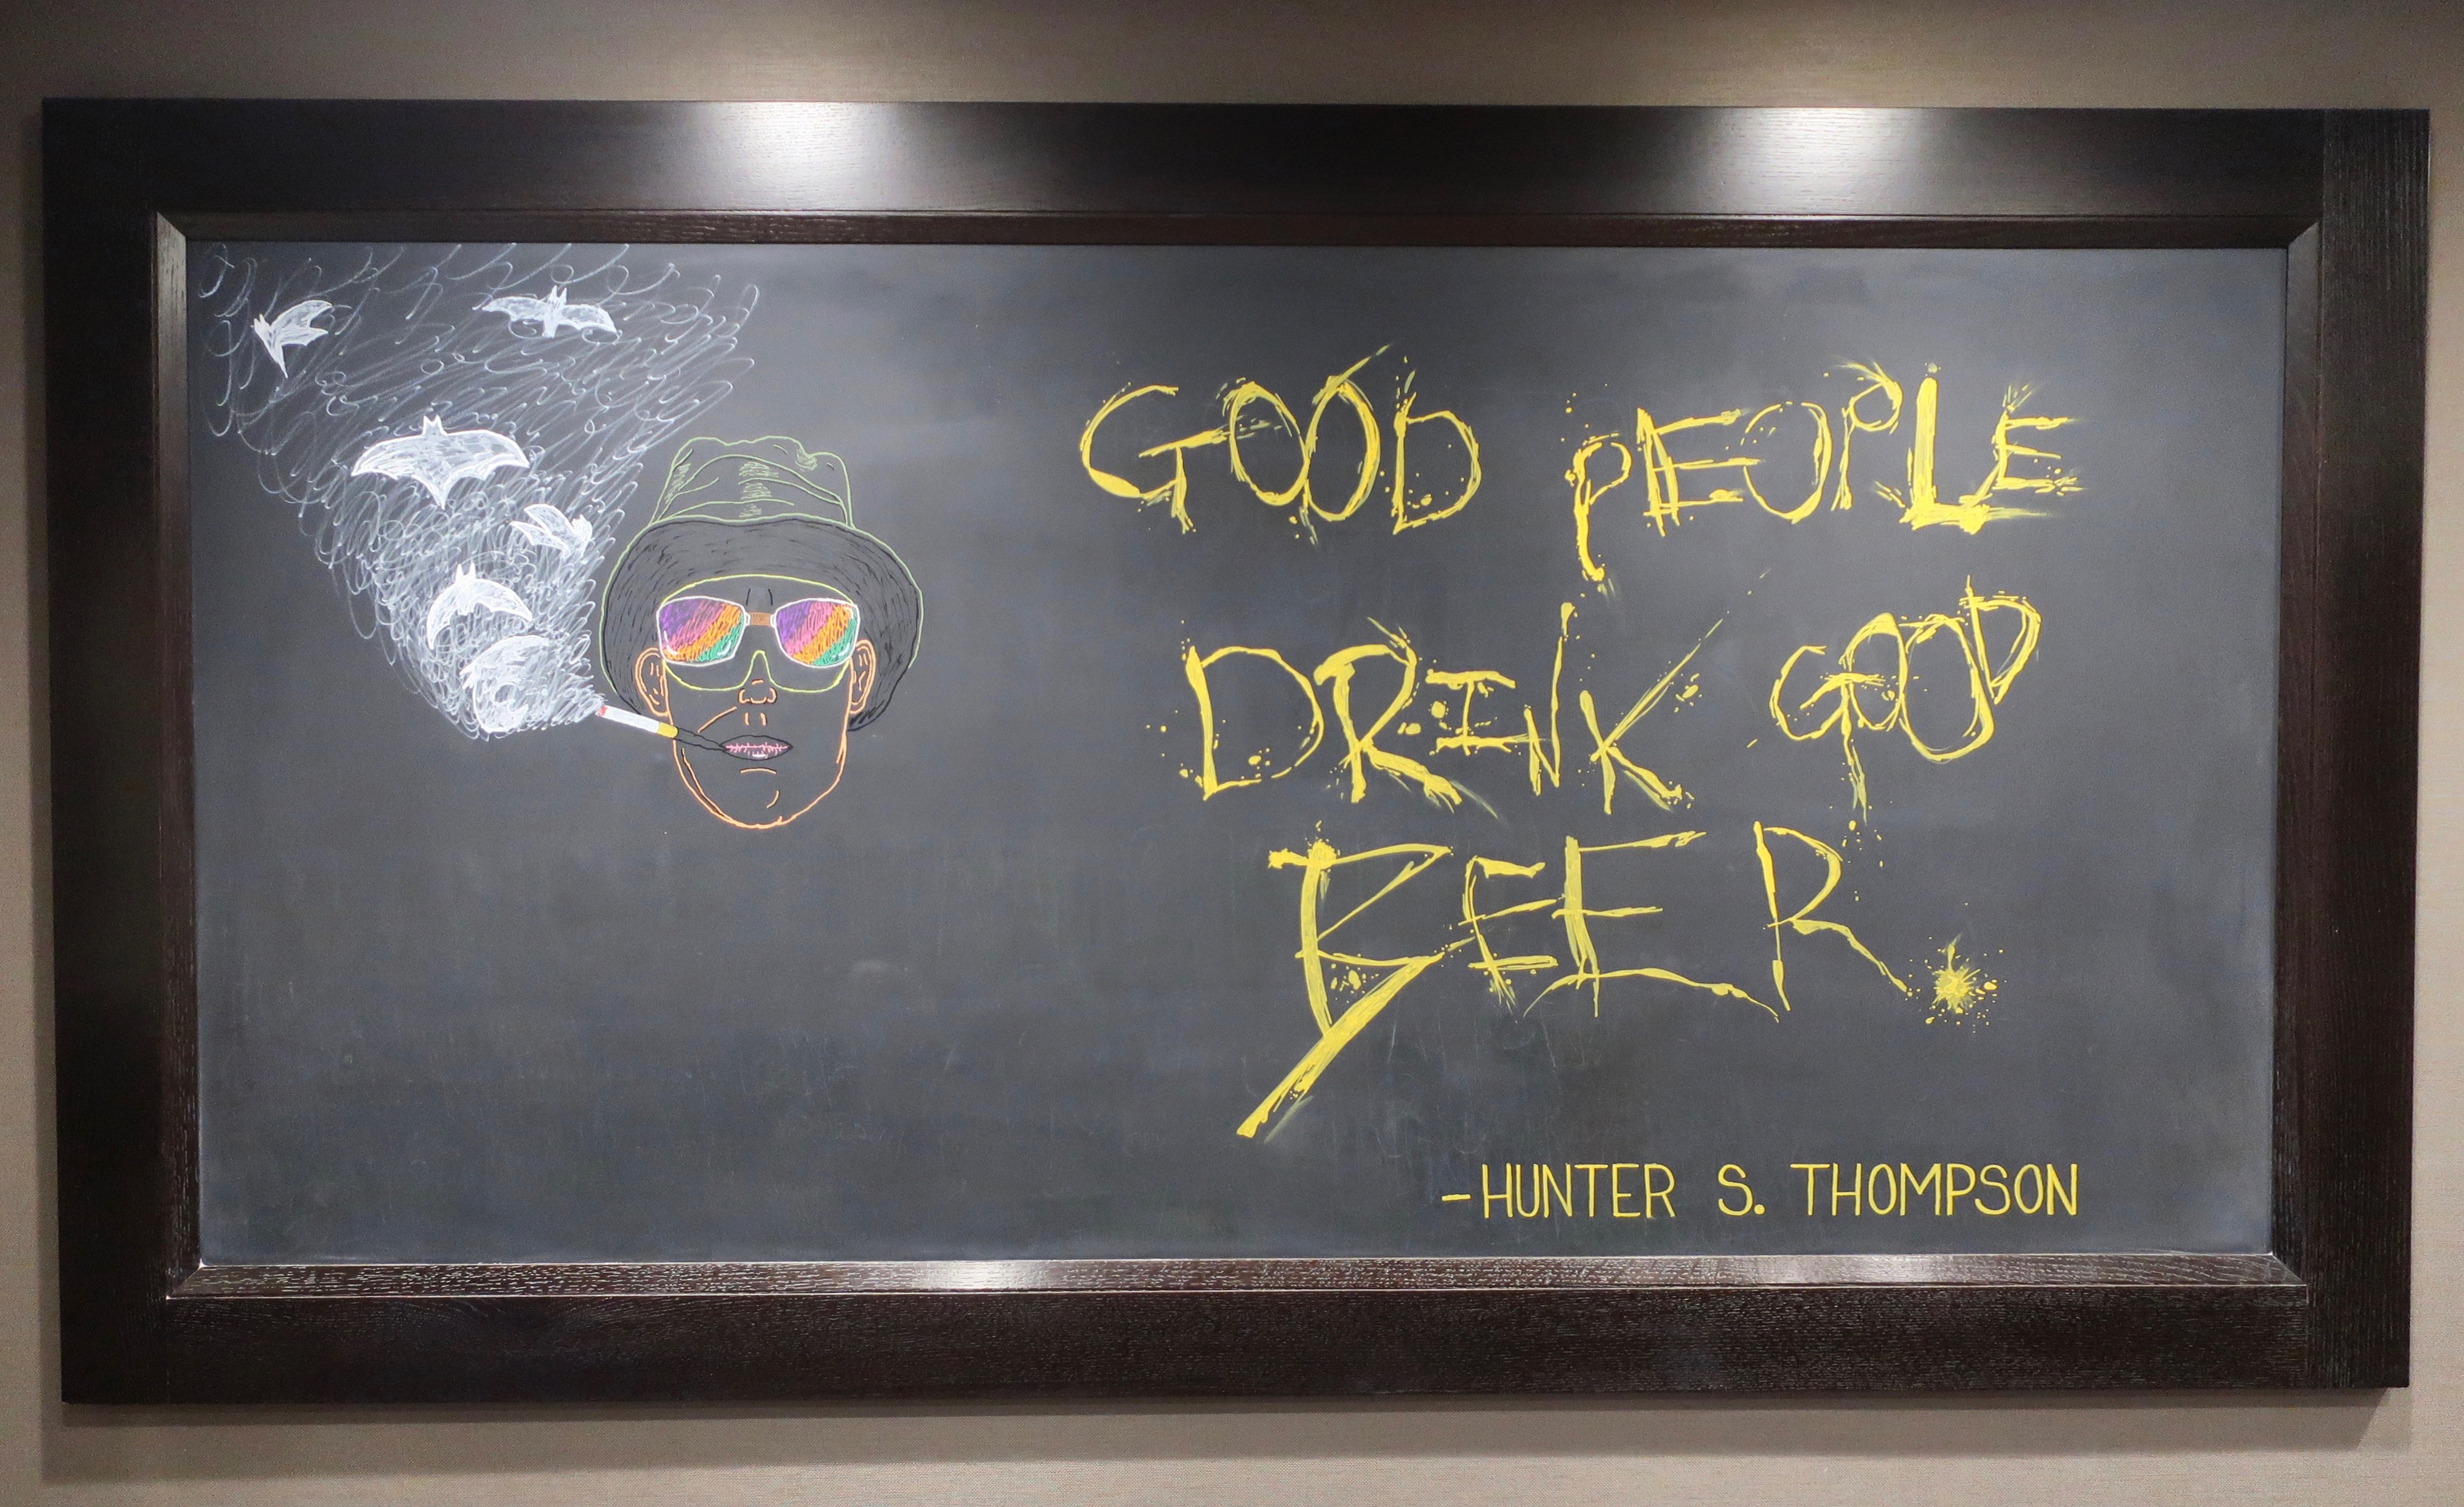 """Good People Drink Good Beer"" - Hunter S. Thompson greets visitors at Von Ebert Brewing - East."